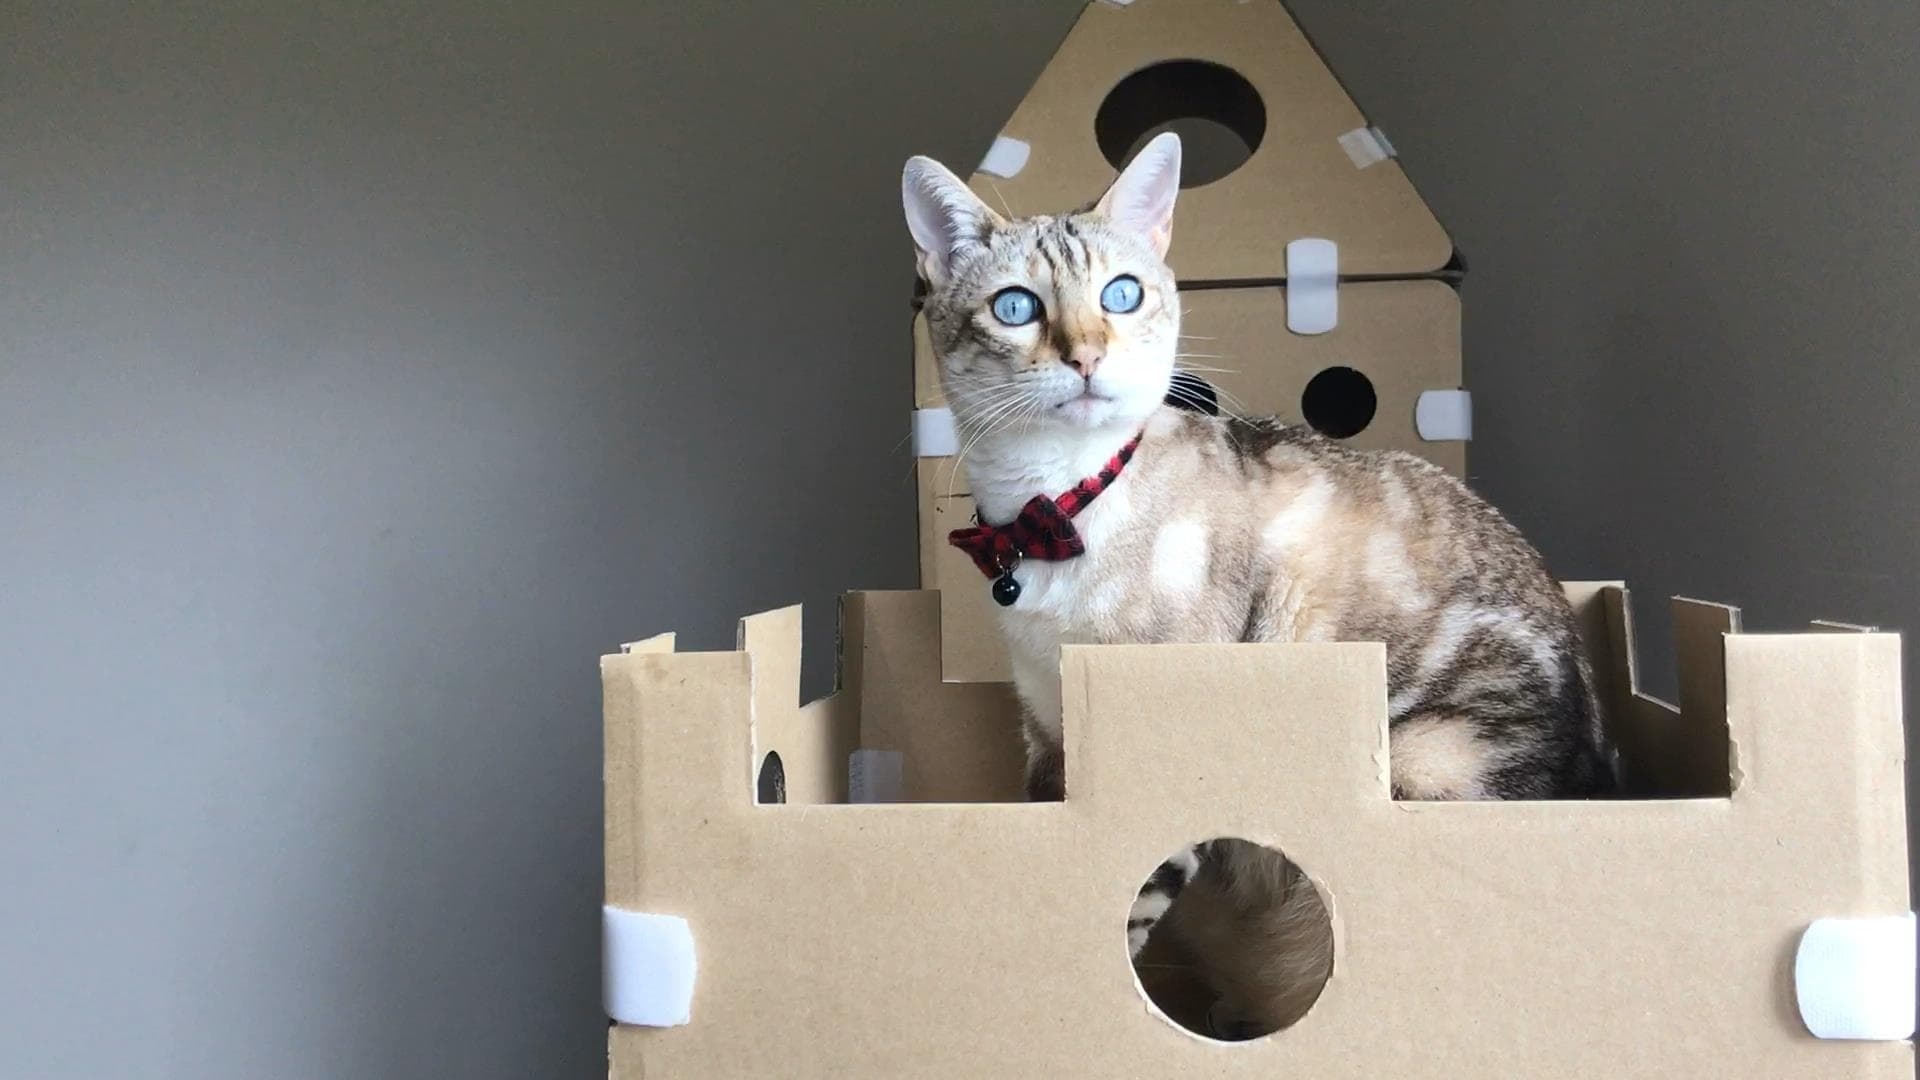 DIY cat tower